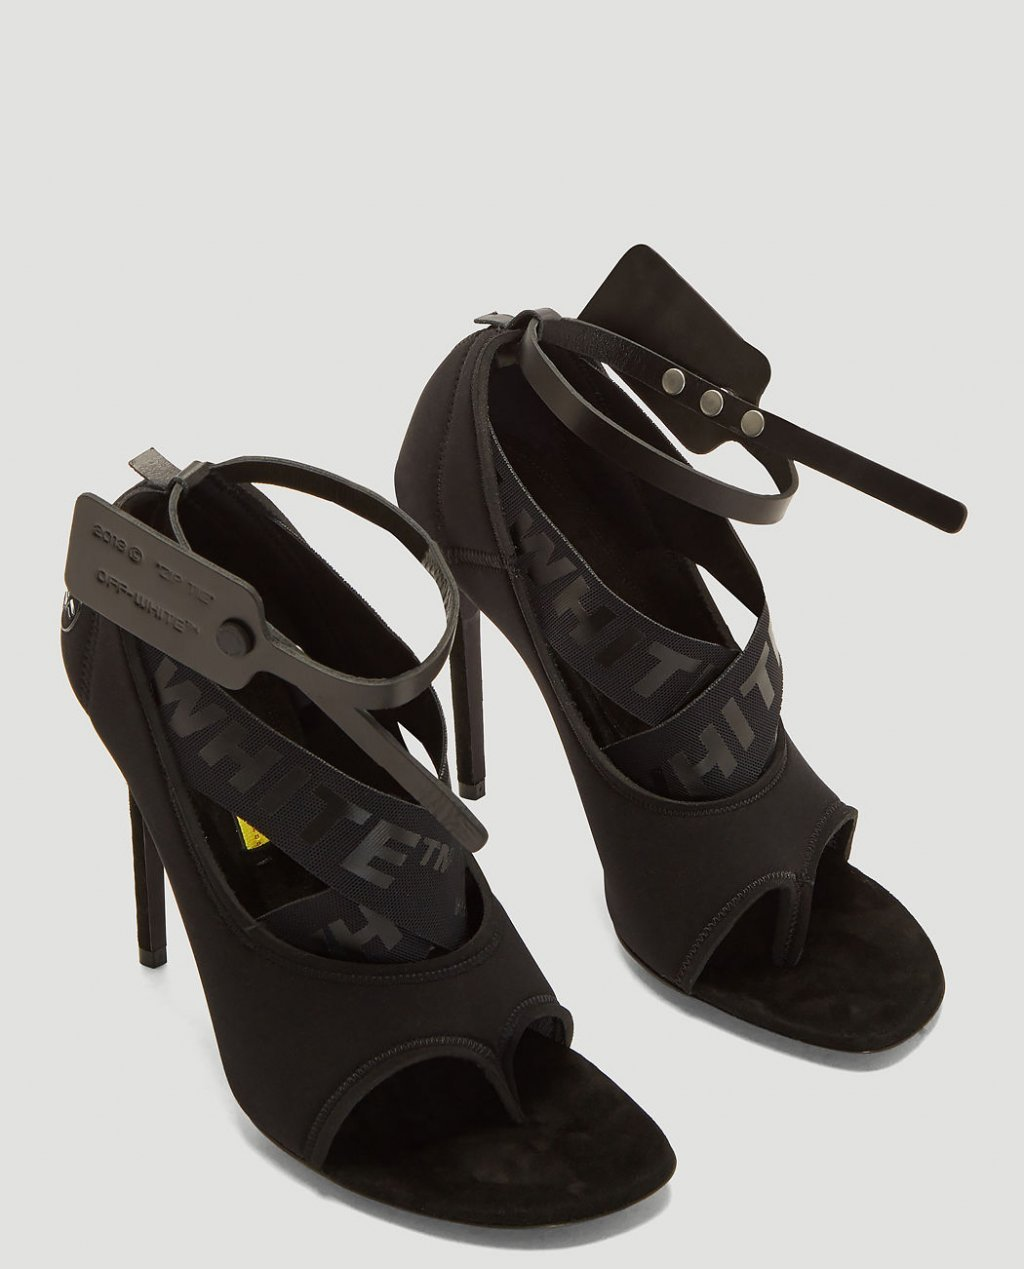 OFF-WHITE Yoga Stiletto Sandals in Black